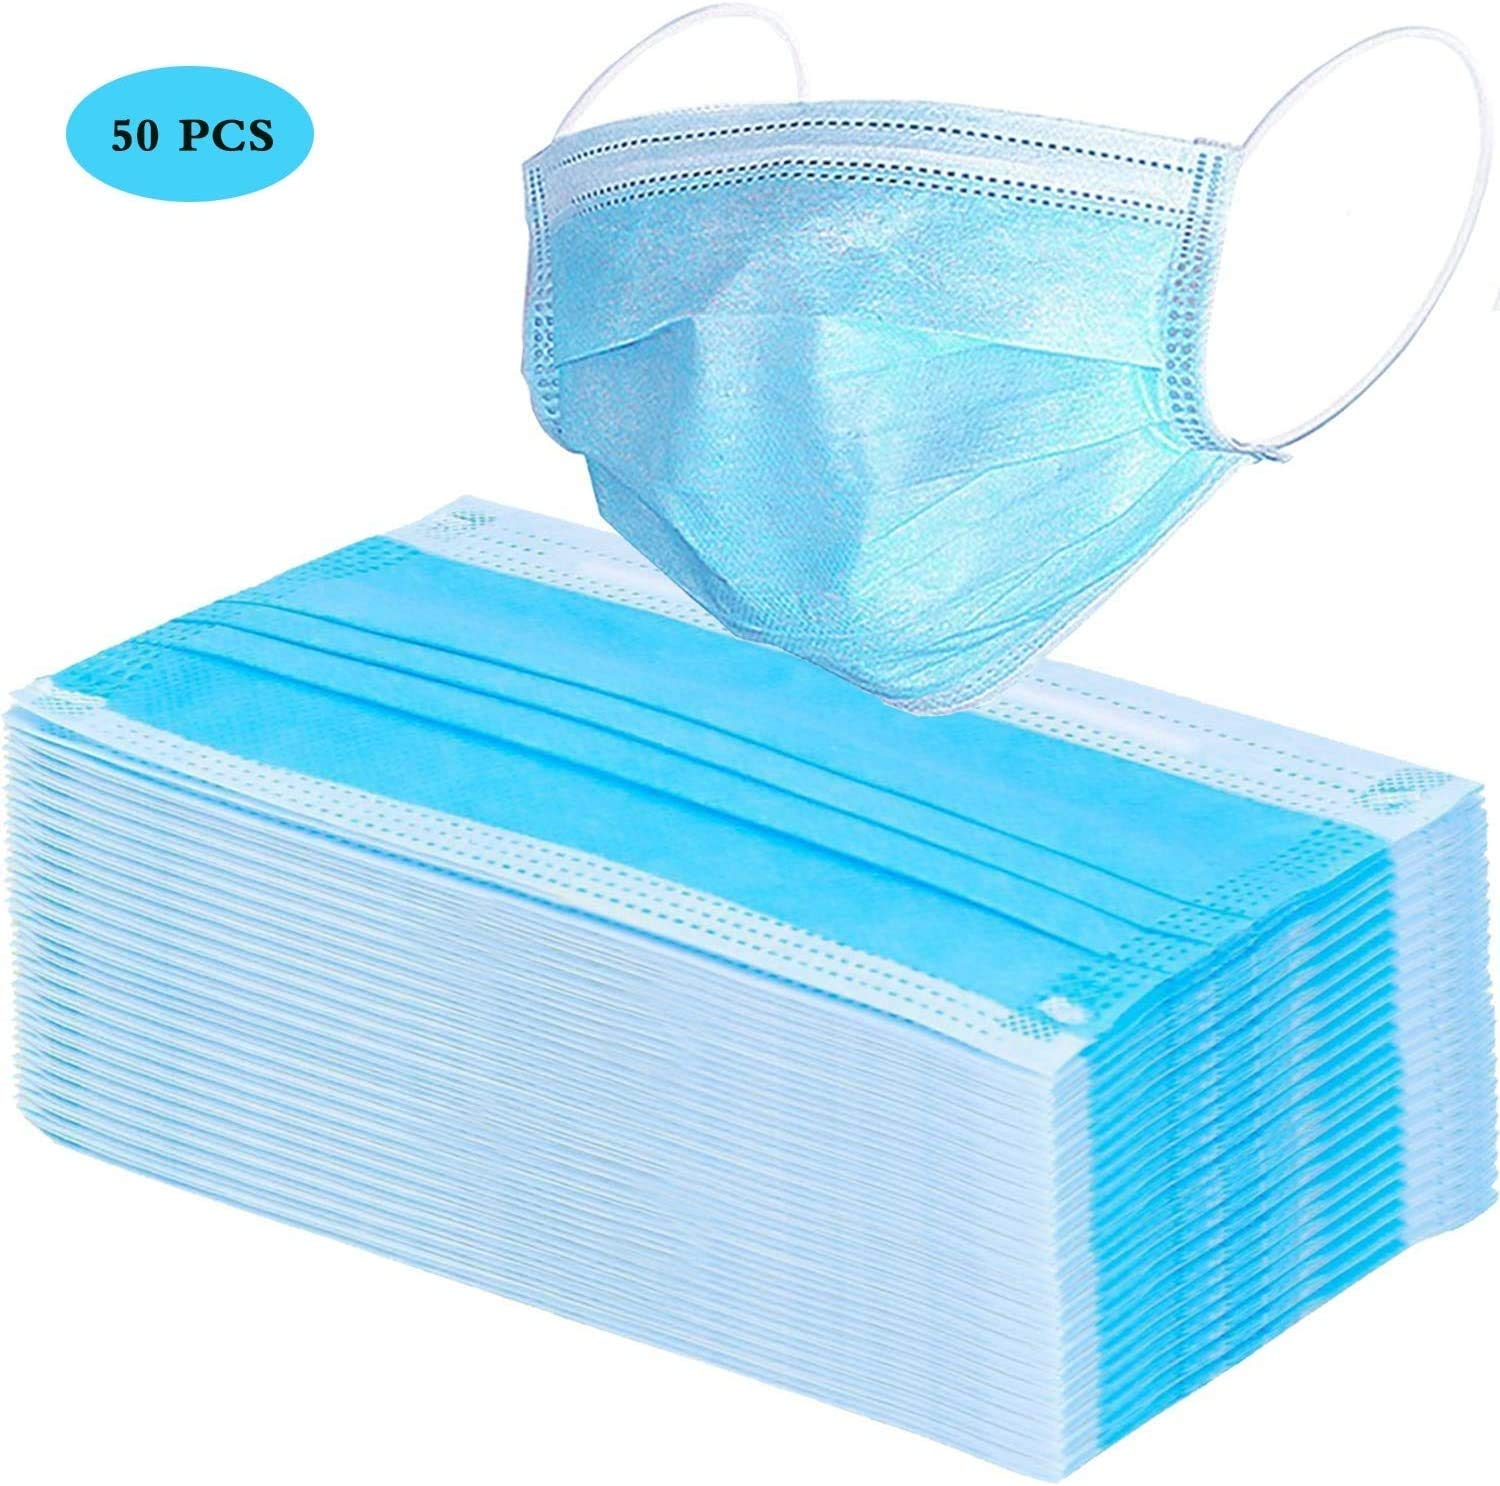 Thick 3-Ply Face Shield with Elastic Ear Loop Cover Full Face Anti-bacterial